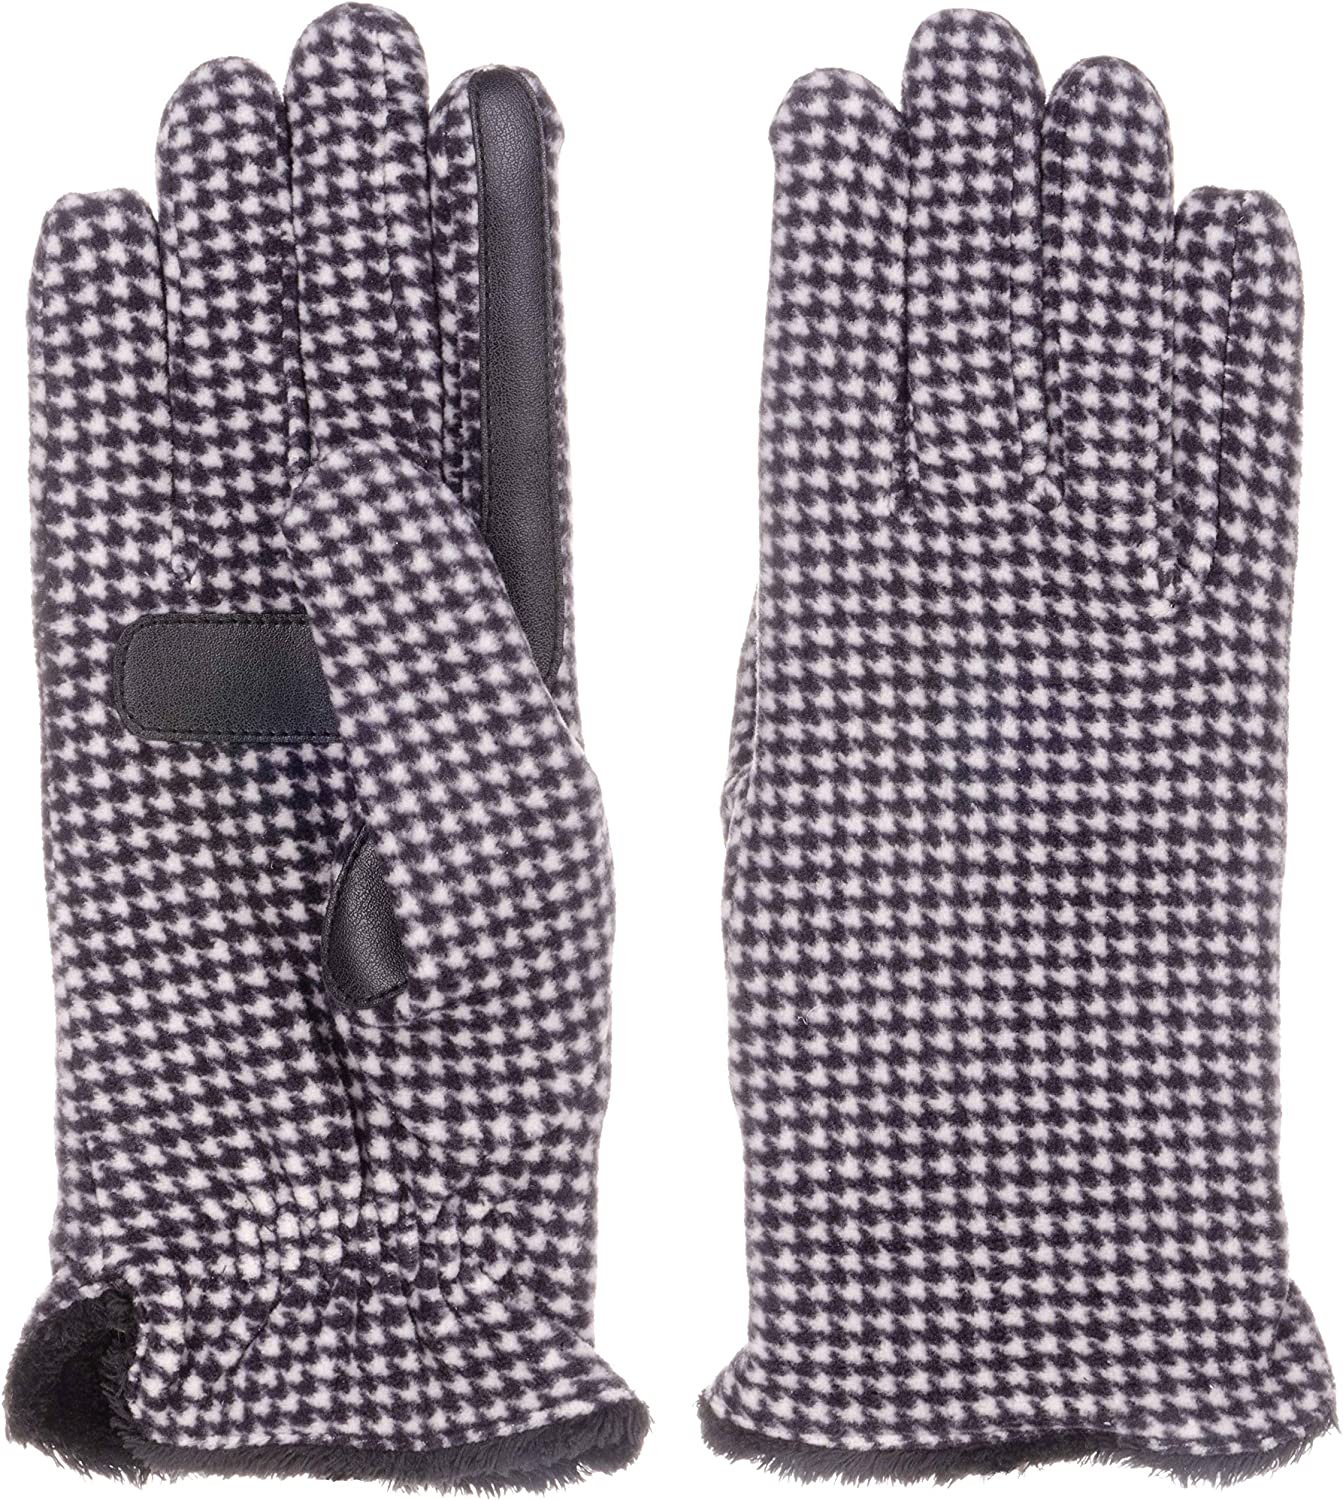 Isotoner womens Stretch Fleece Glove - Microluxe Houndstooth One Size